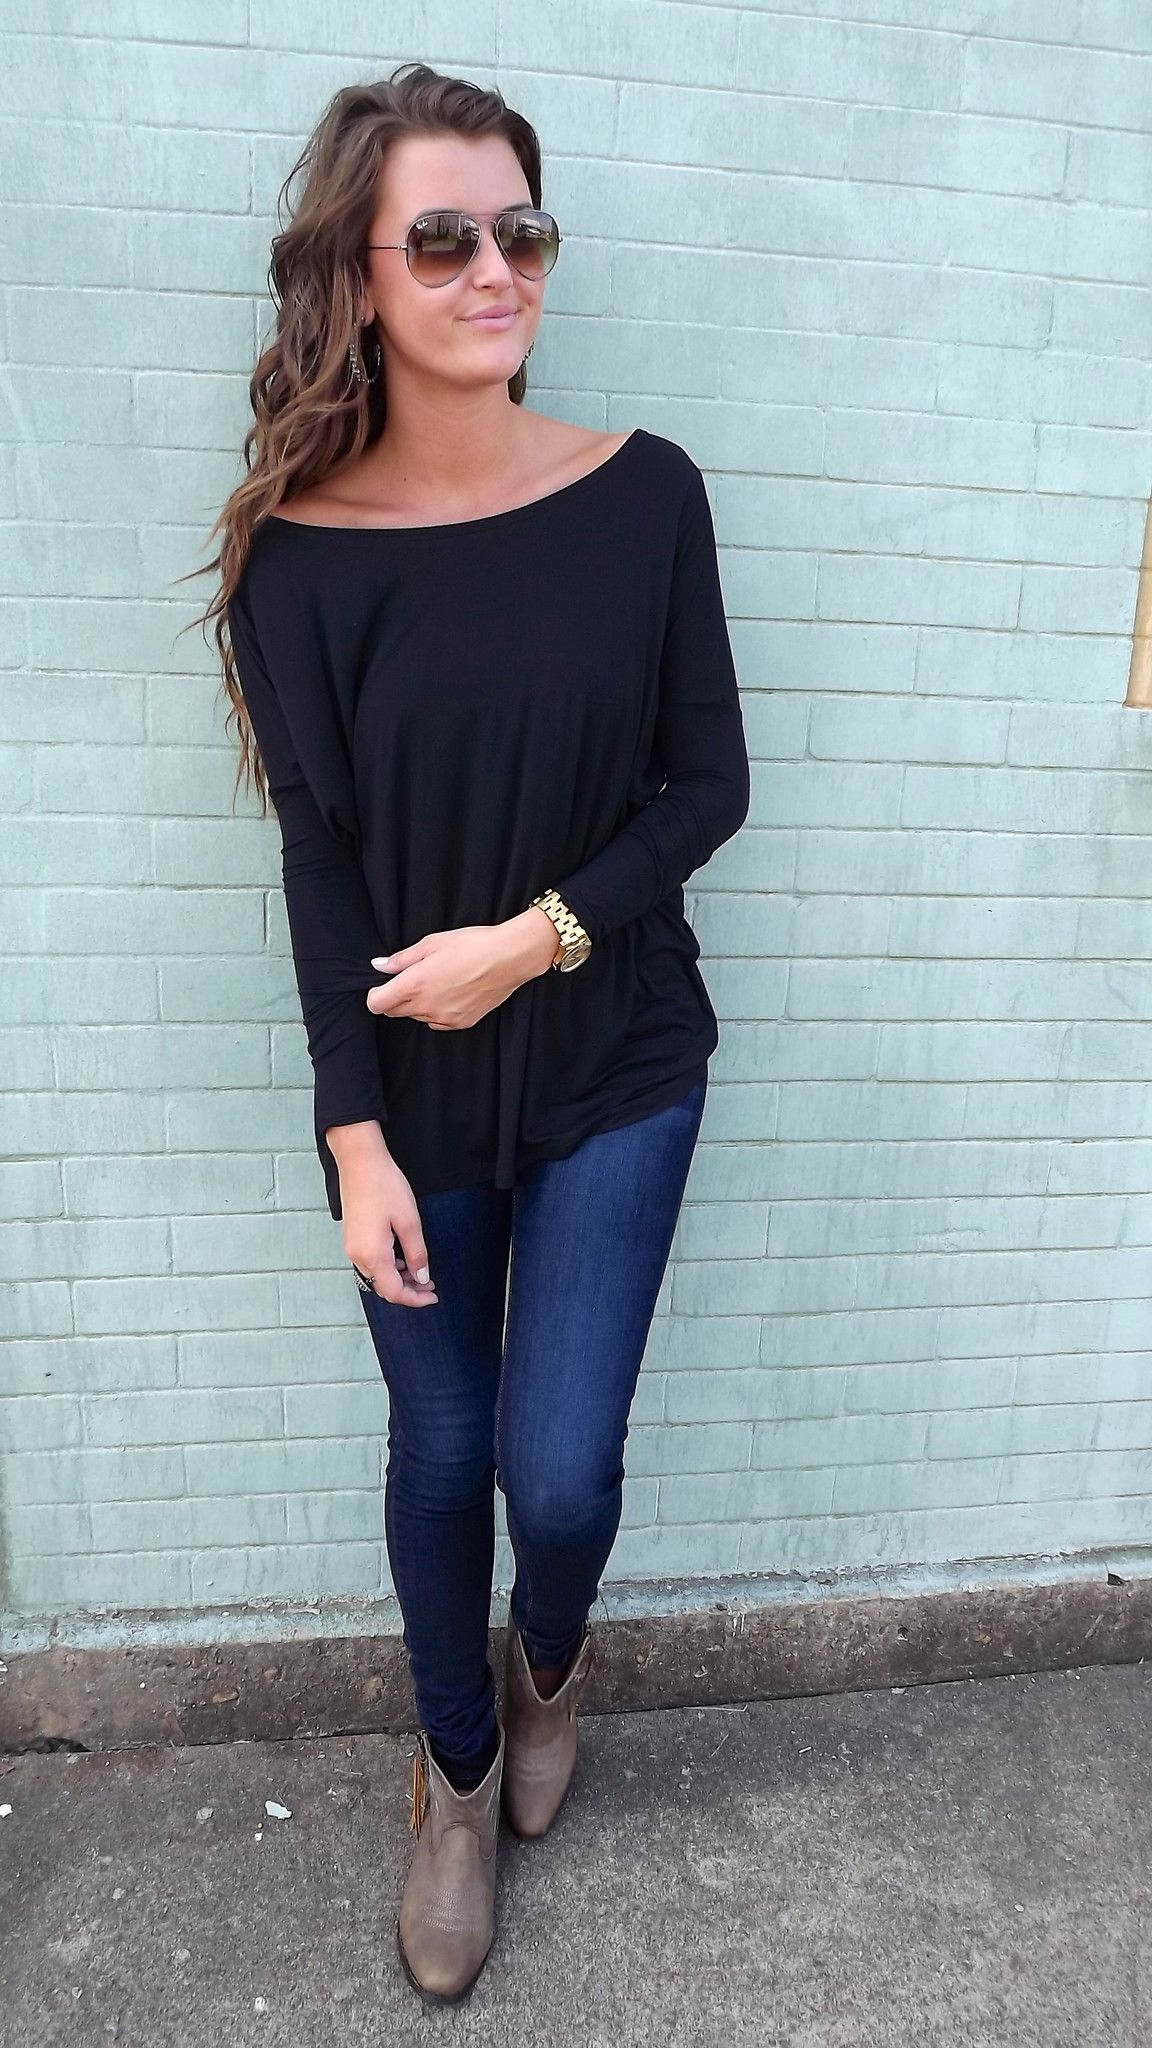 a73cb41abb6b Oversized loose fitting black long sleeve. Perfect fall outfit for lazy  days!